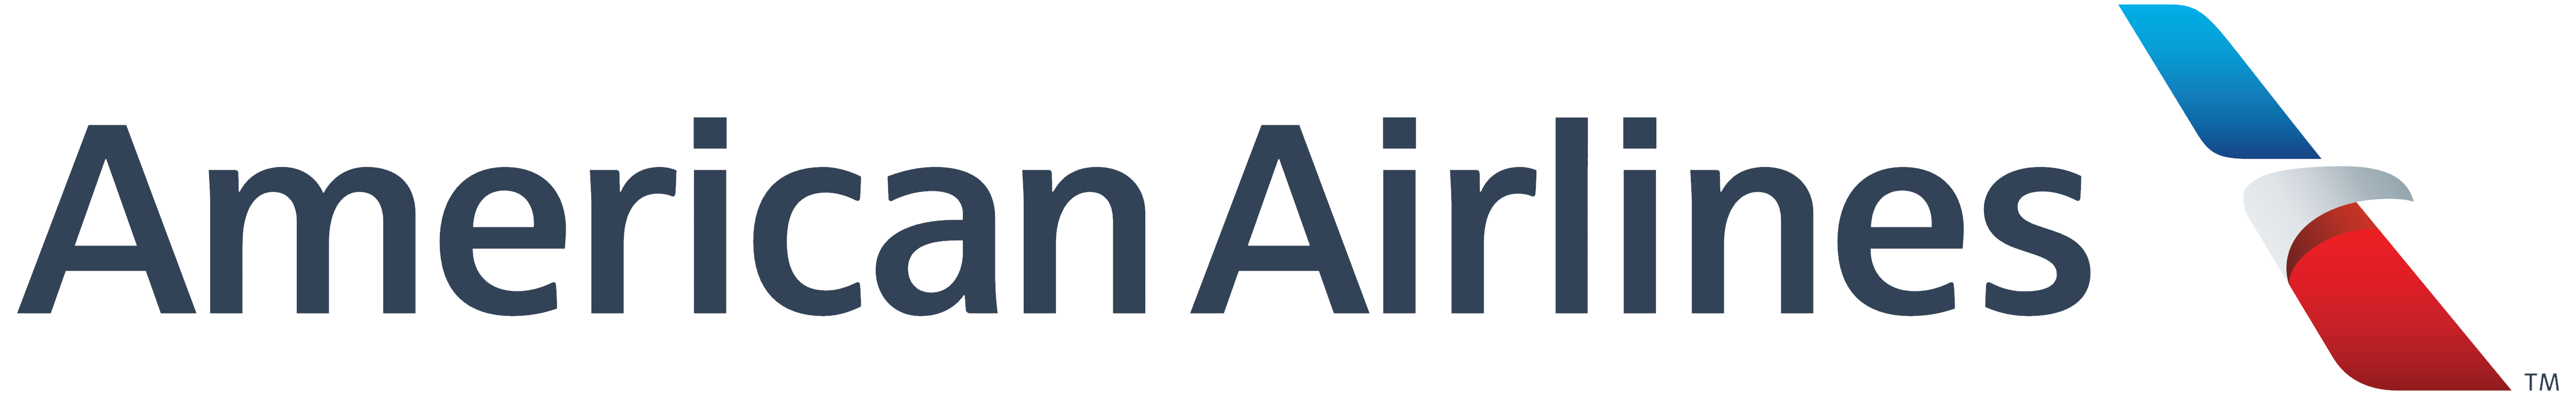 American Airlines Logos Download